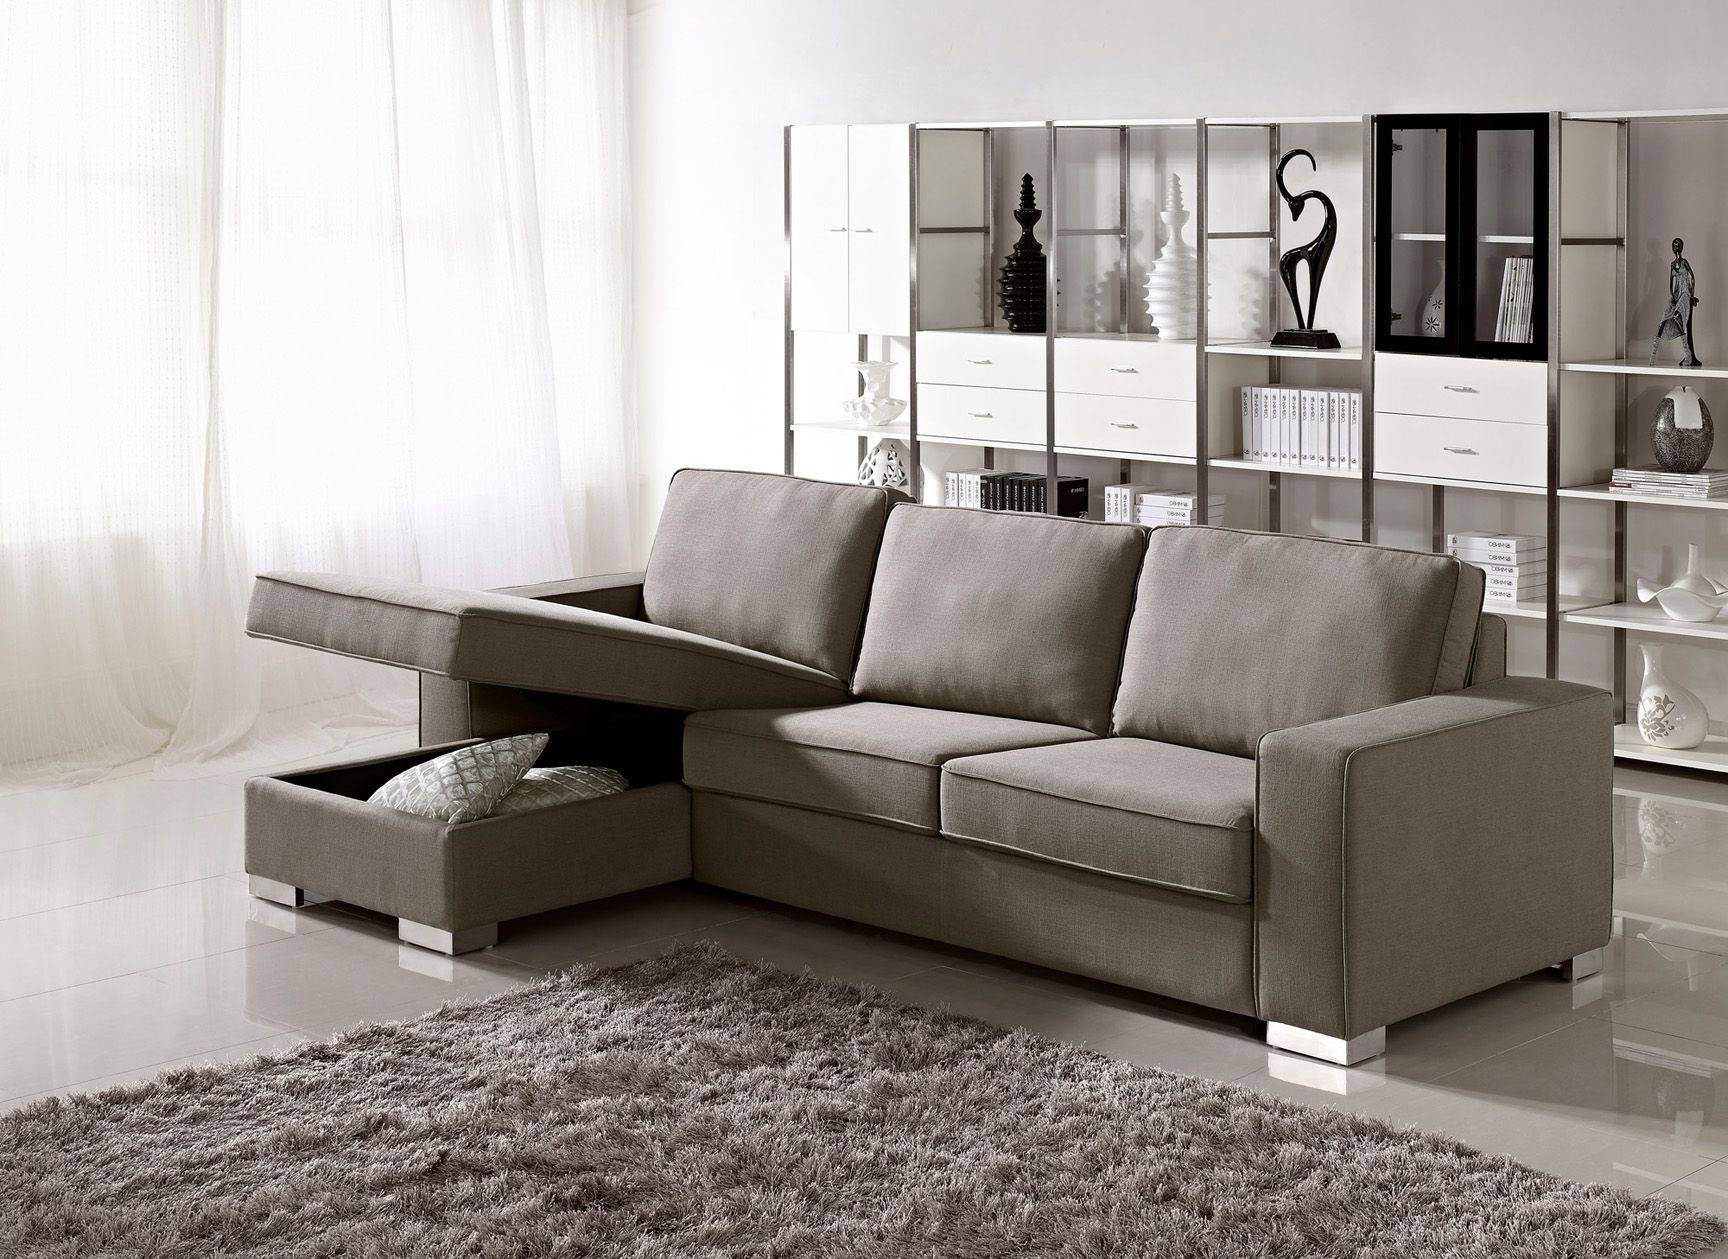 Latest Simple Small Sectional Sofa For Apartment 84 For Your Leather With Regard To Small Sectional Sofas With Chaise Lounge (View 15 of 15)